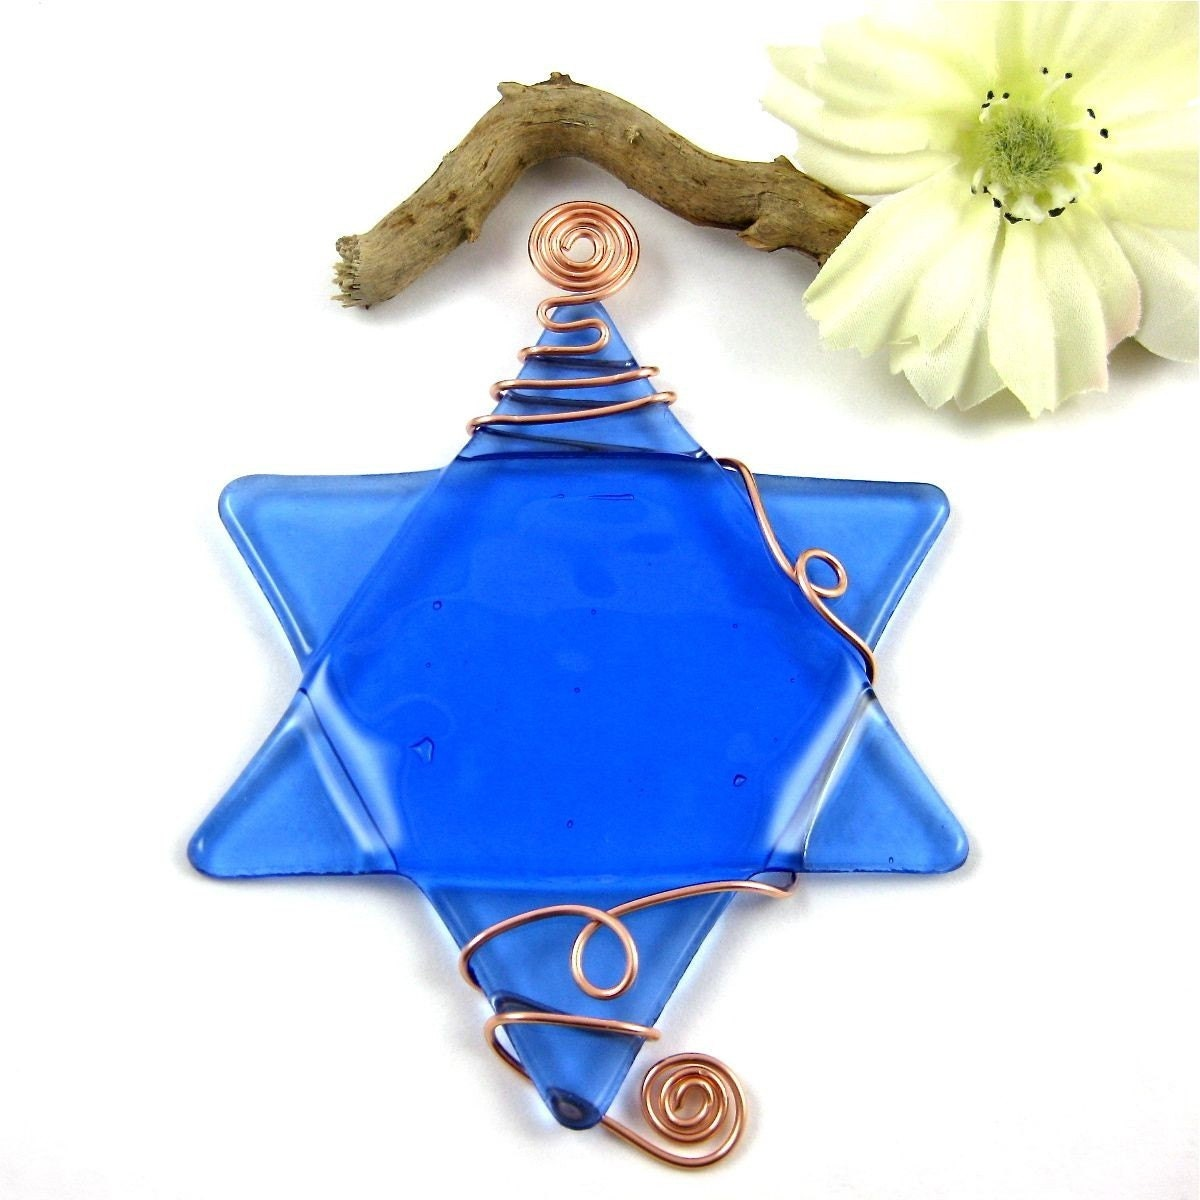 il 170x135.176327980 My First Ever Curated Etsy Treasury There is no Ho Ho Ho in Hanukkah